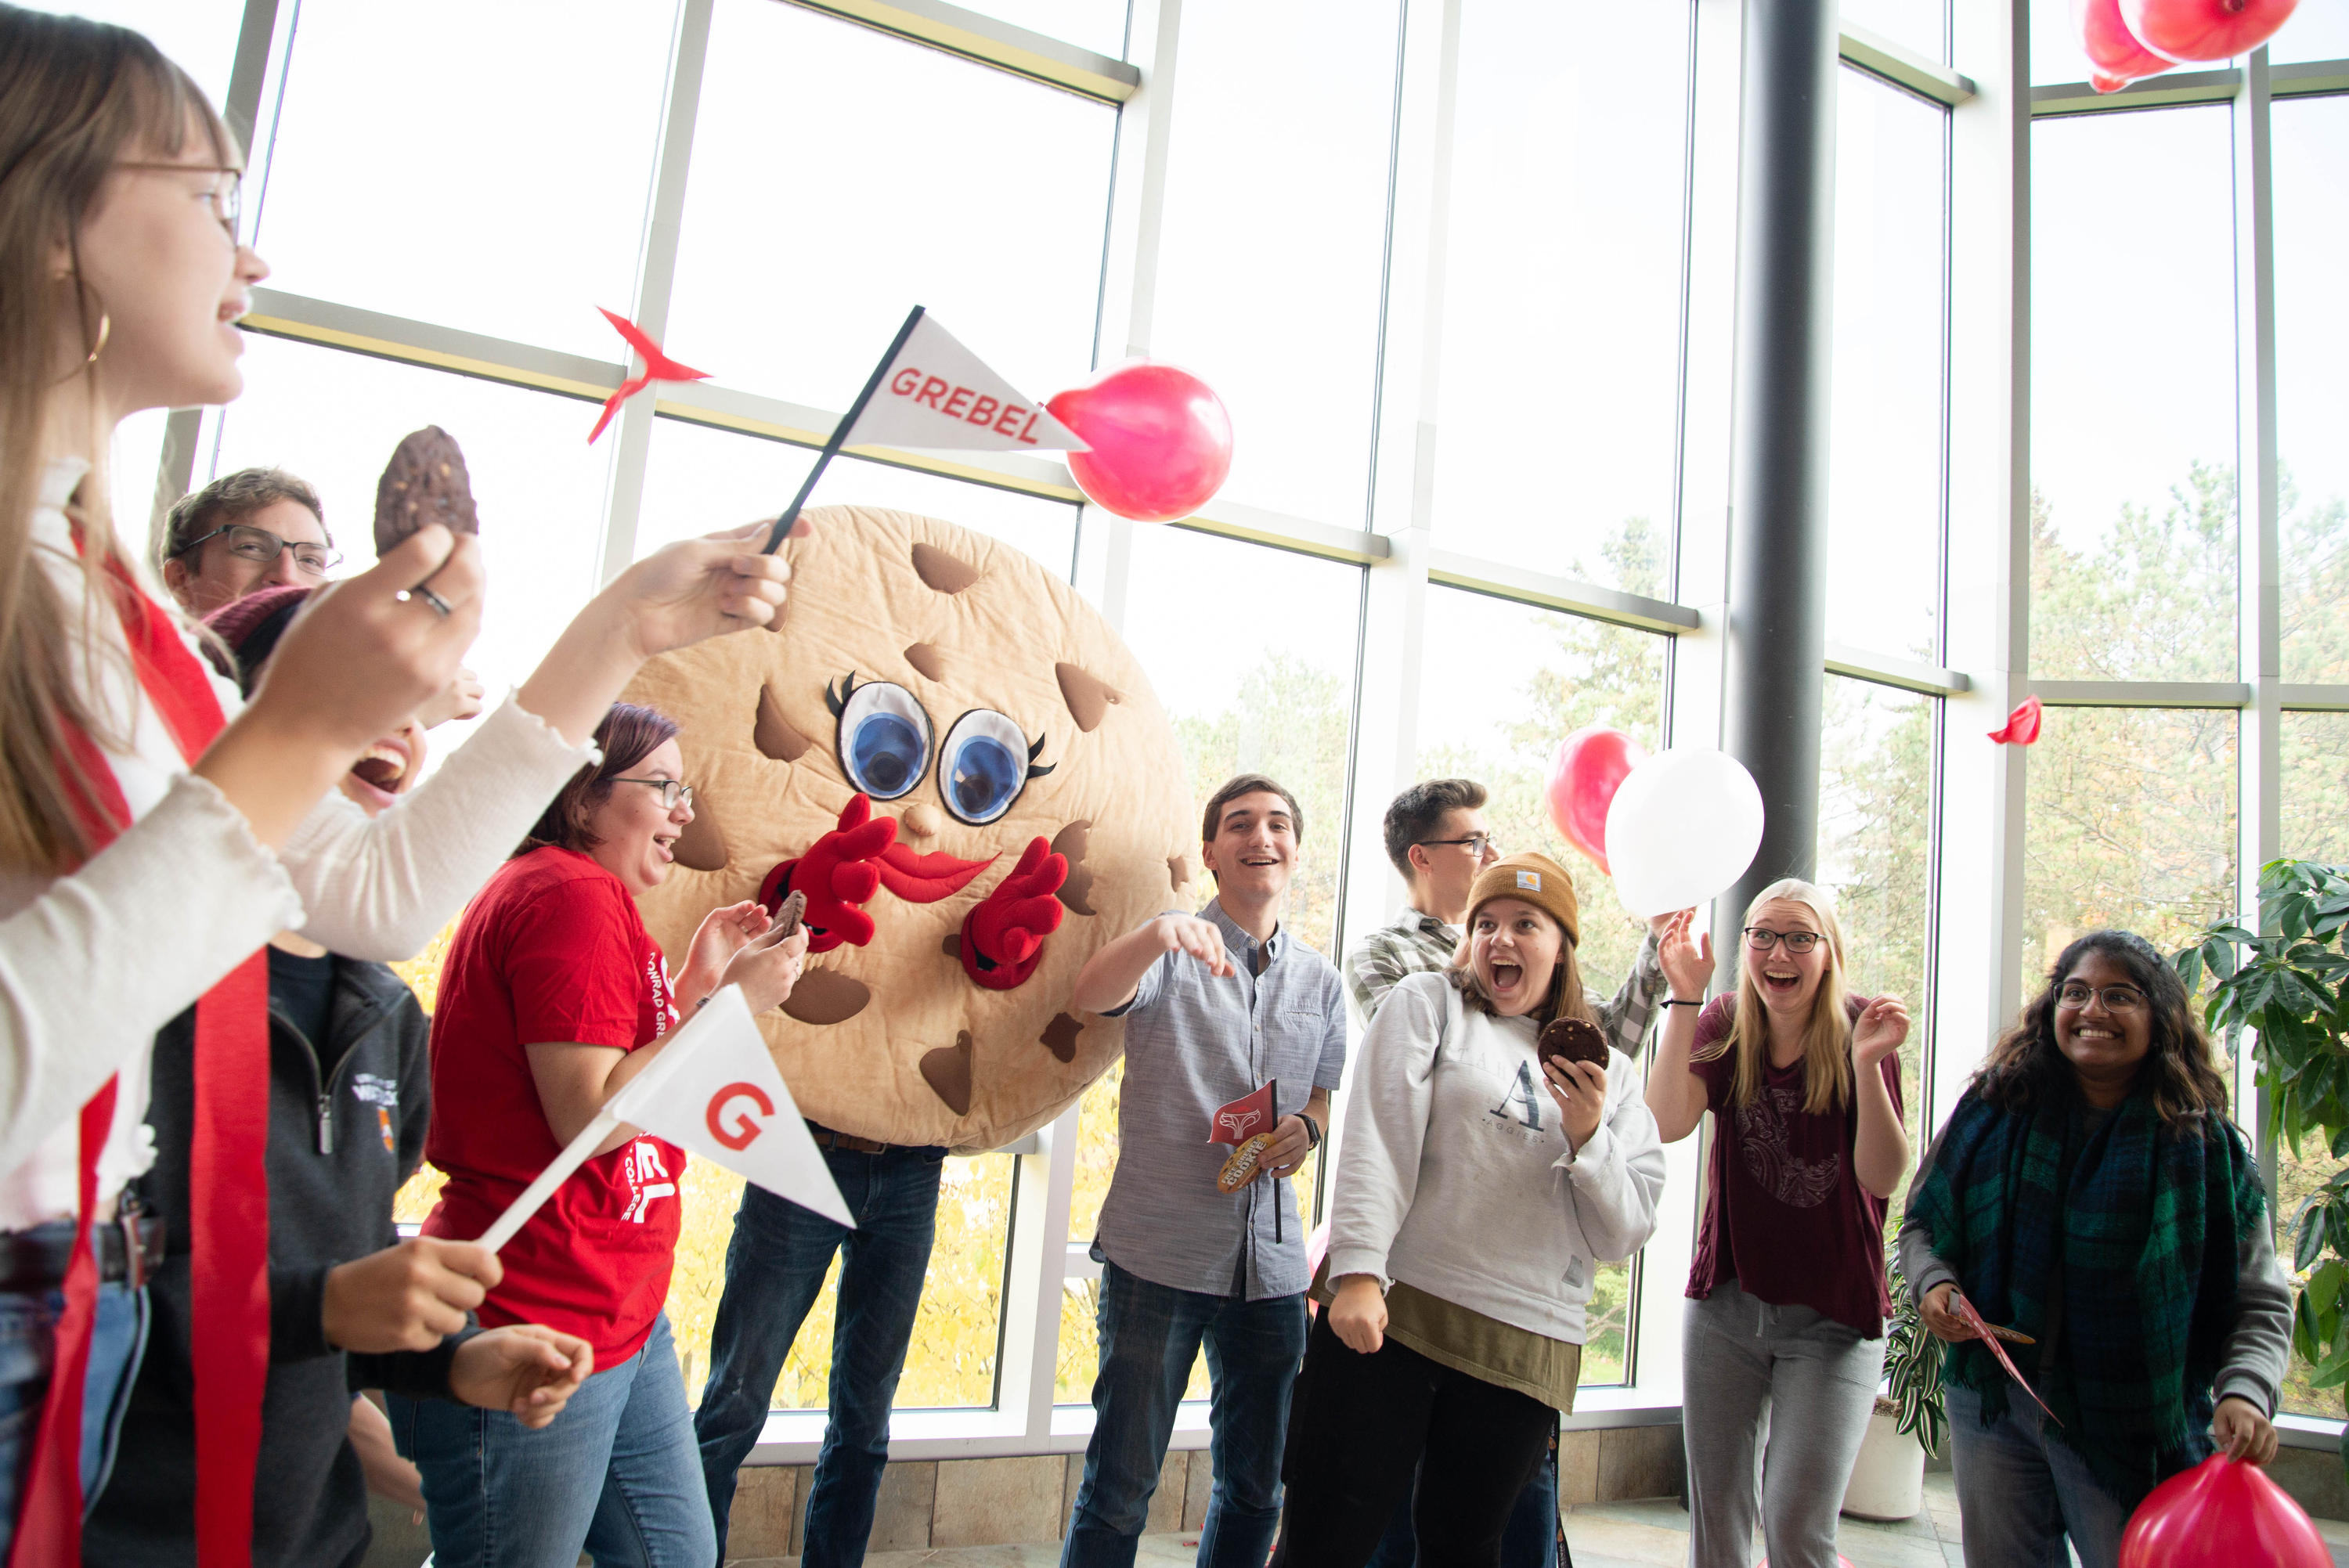 Picture of grebelites who are holding cookies and are dancing with the cookie mascot